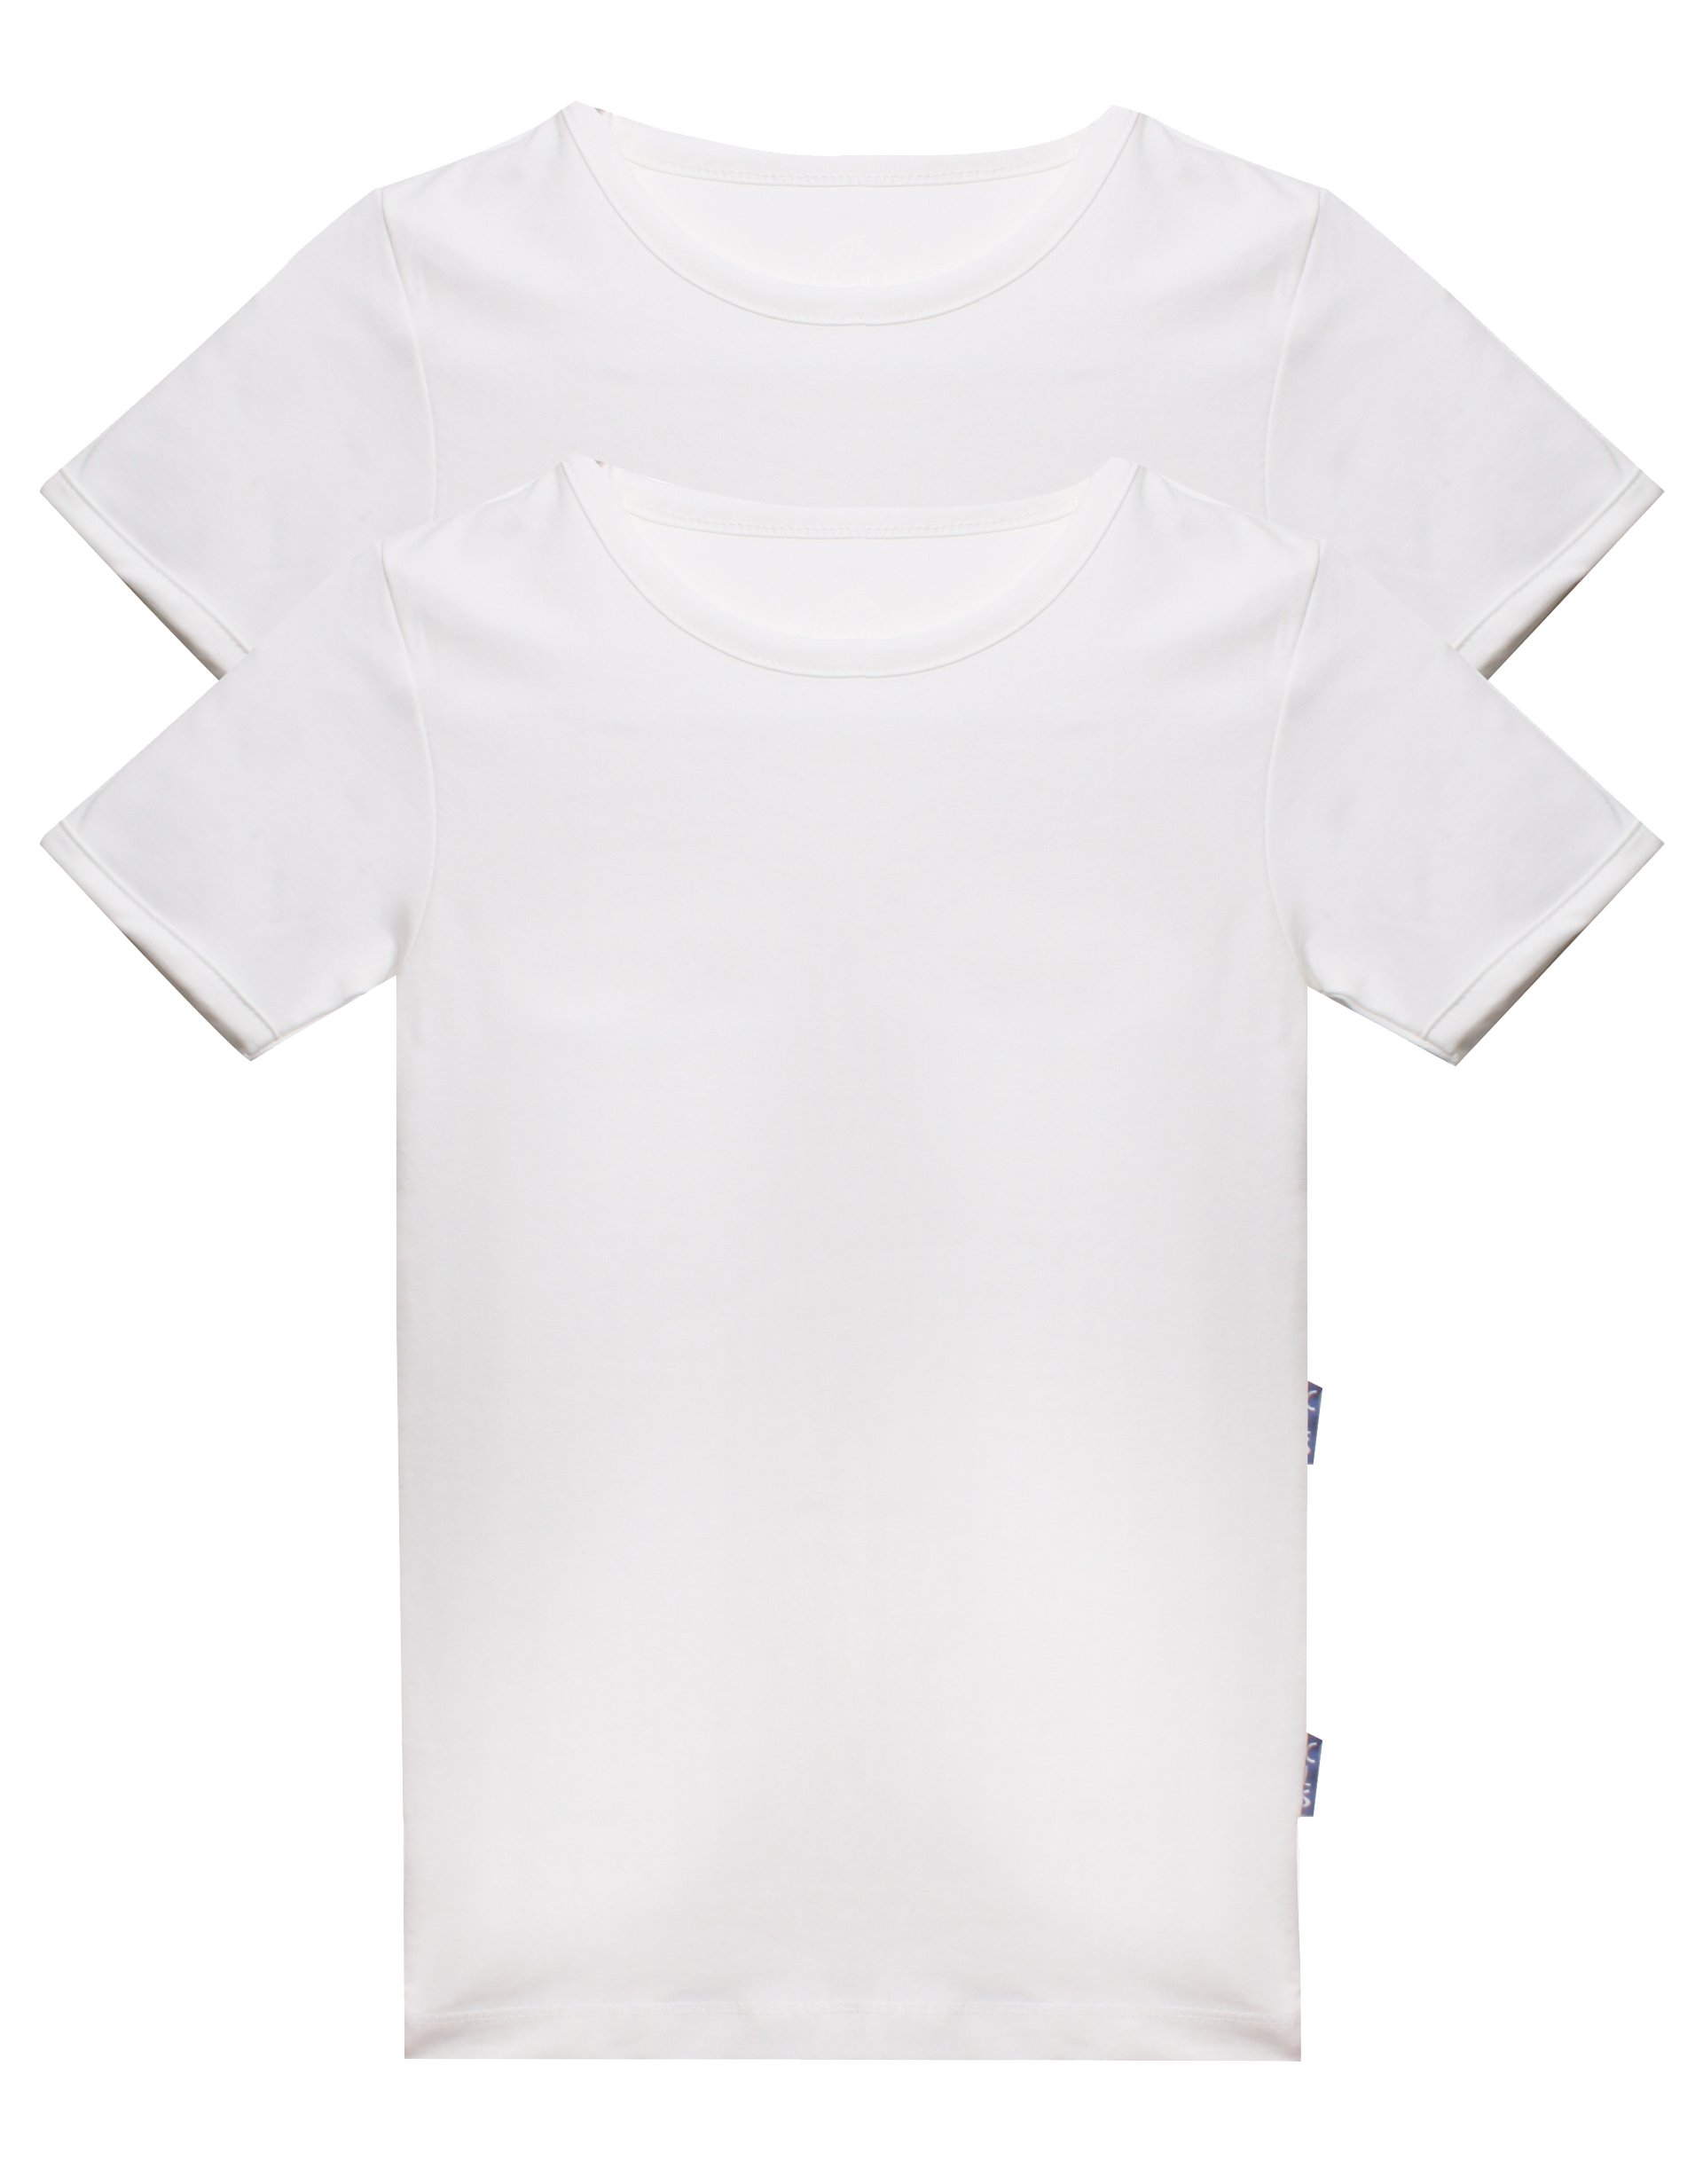 Boys 2-pack T-shirt SS